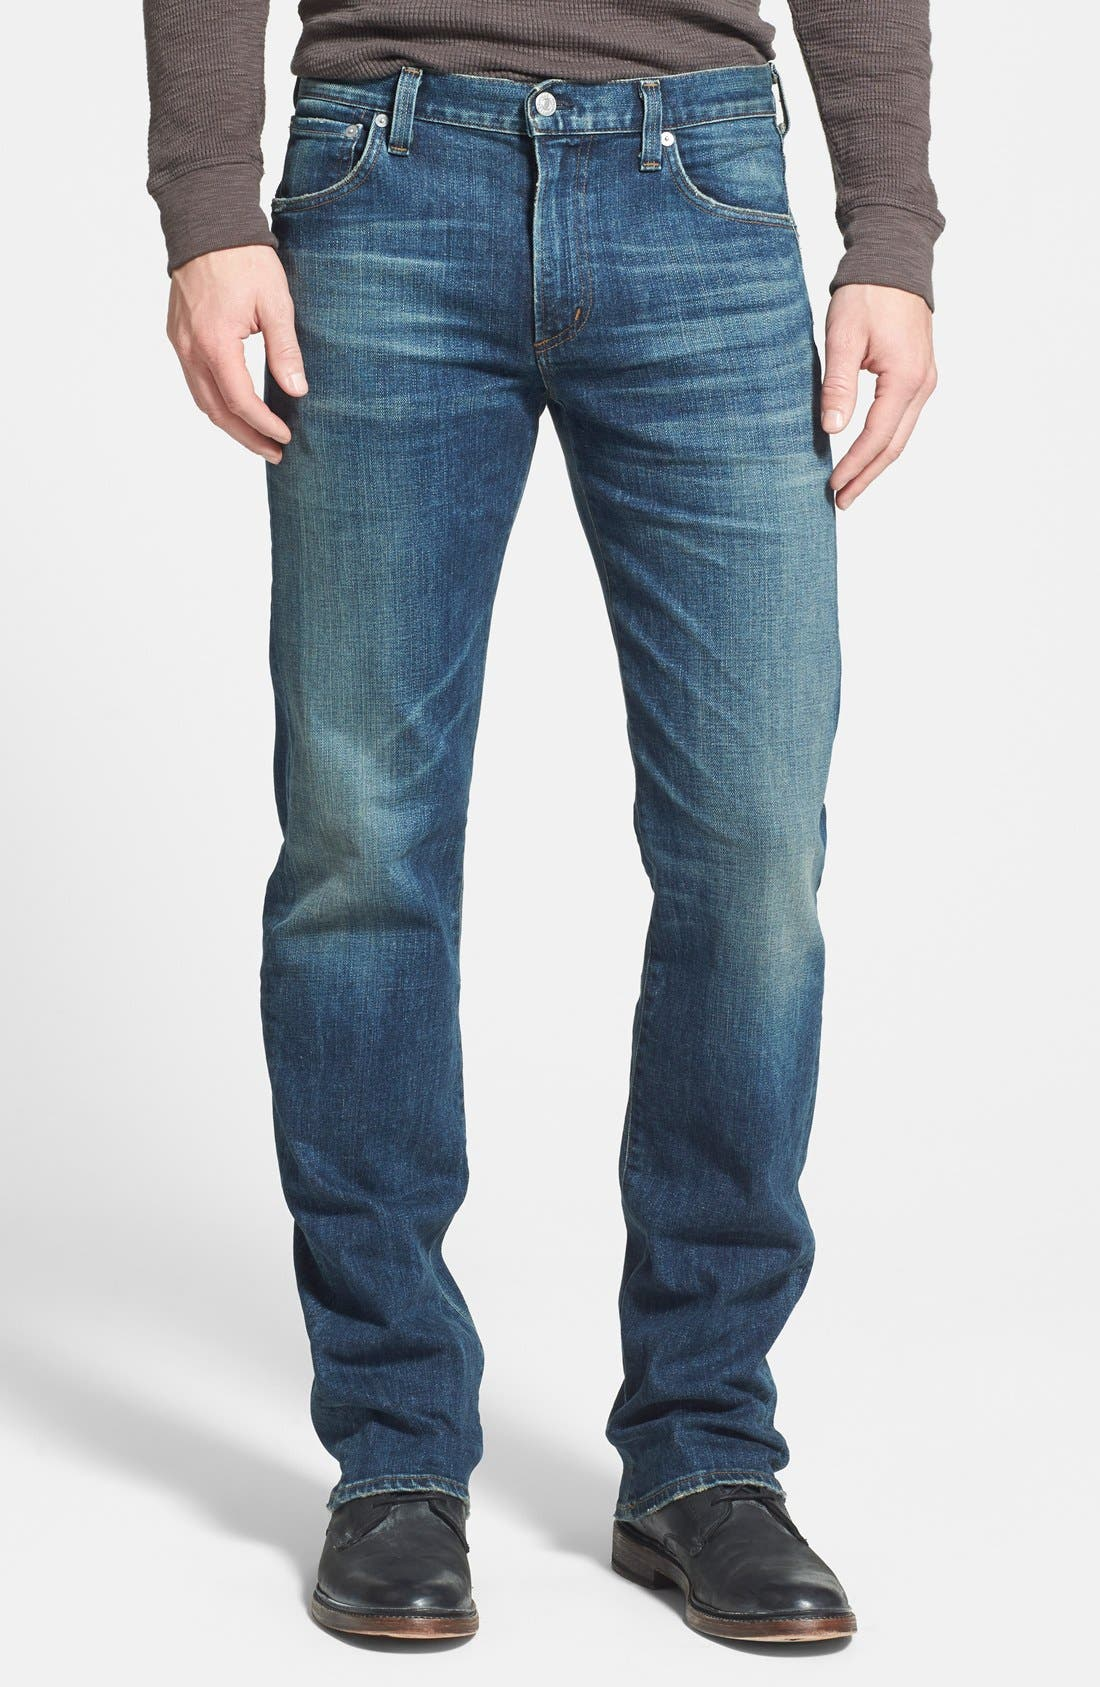 'Sid' Classic Straight Leg Jeans,                             Main thumbnail 1, color,                             429